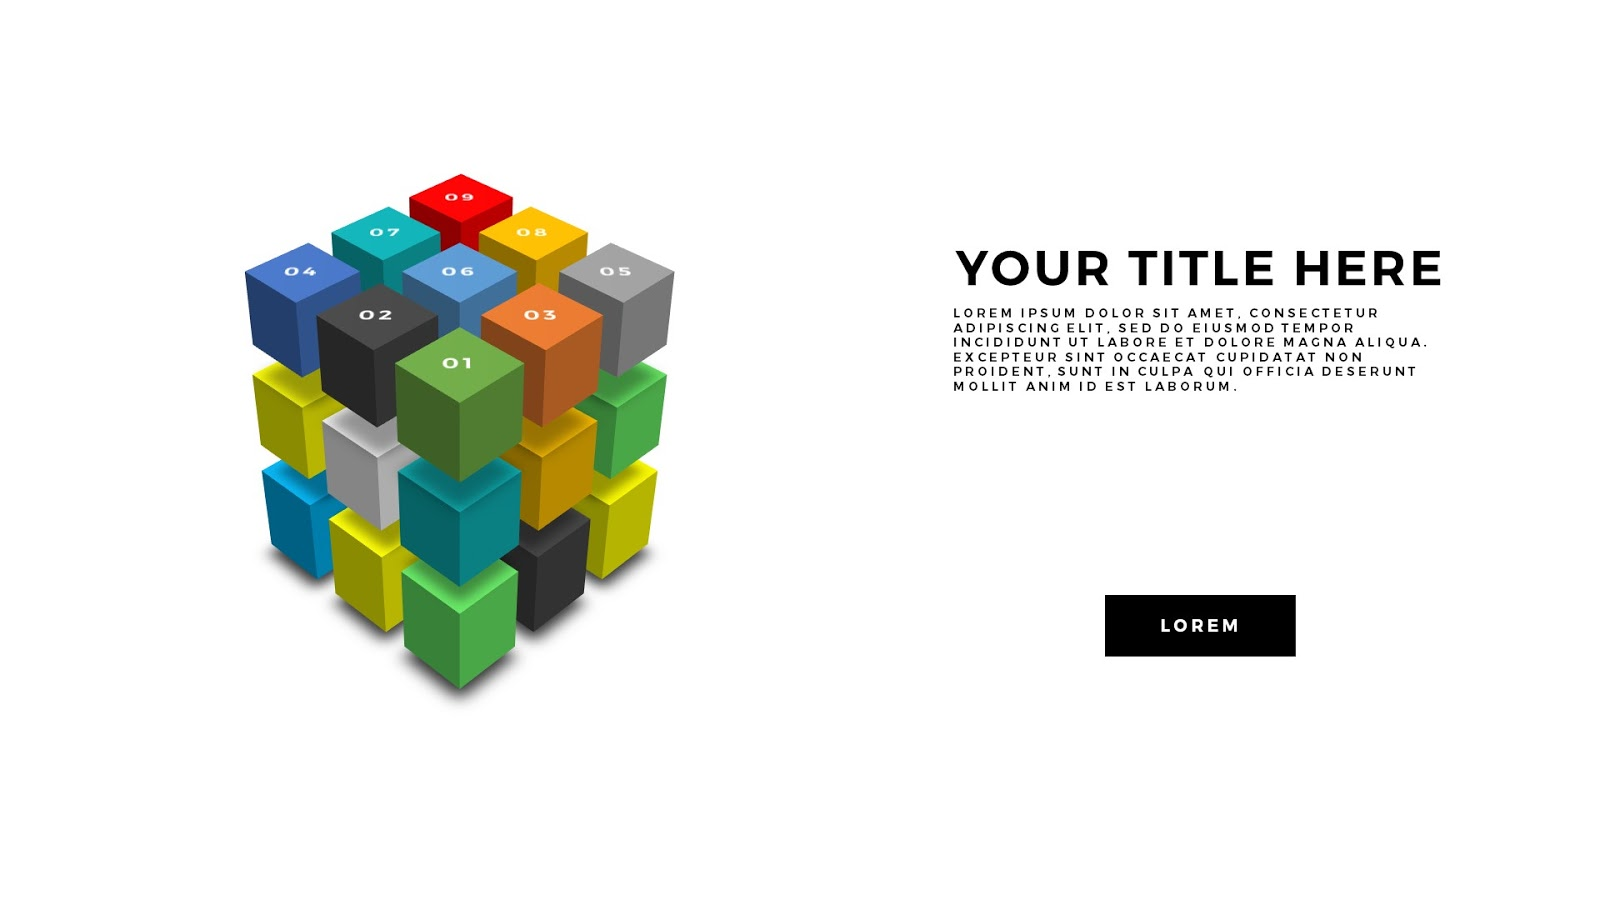 perspective 3d cube design elements for powerpoint template, Modern powerpoint